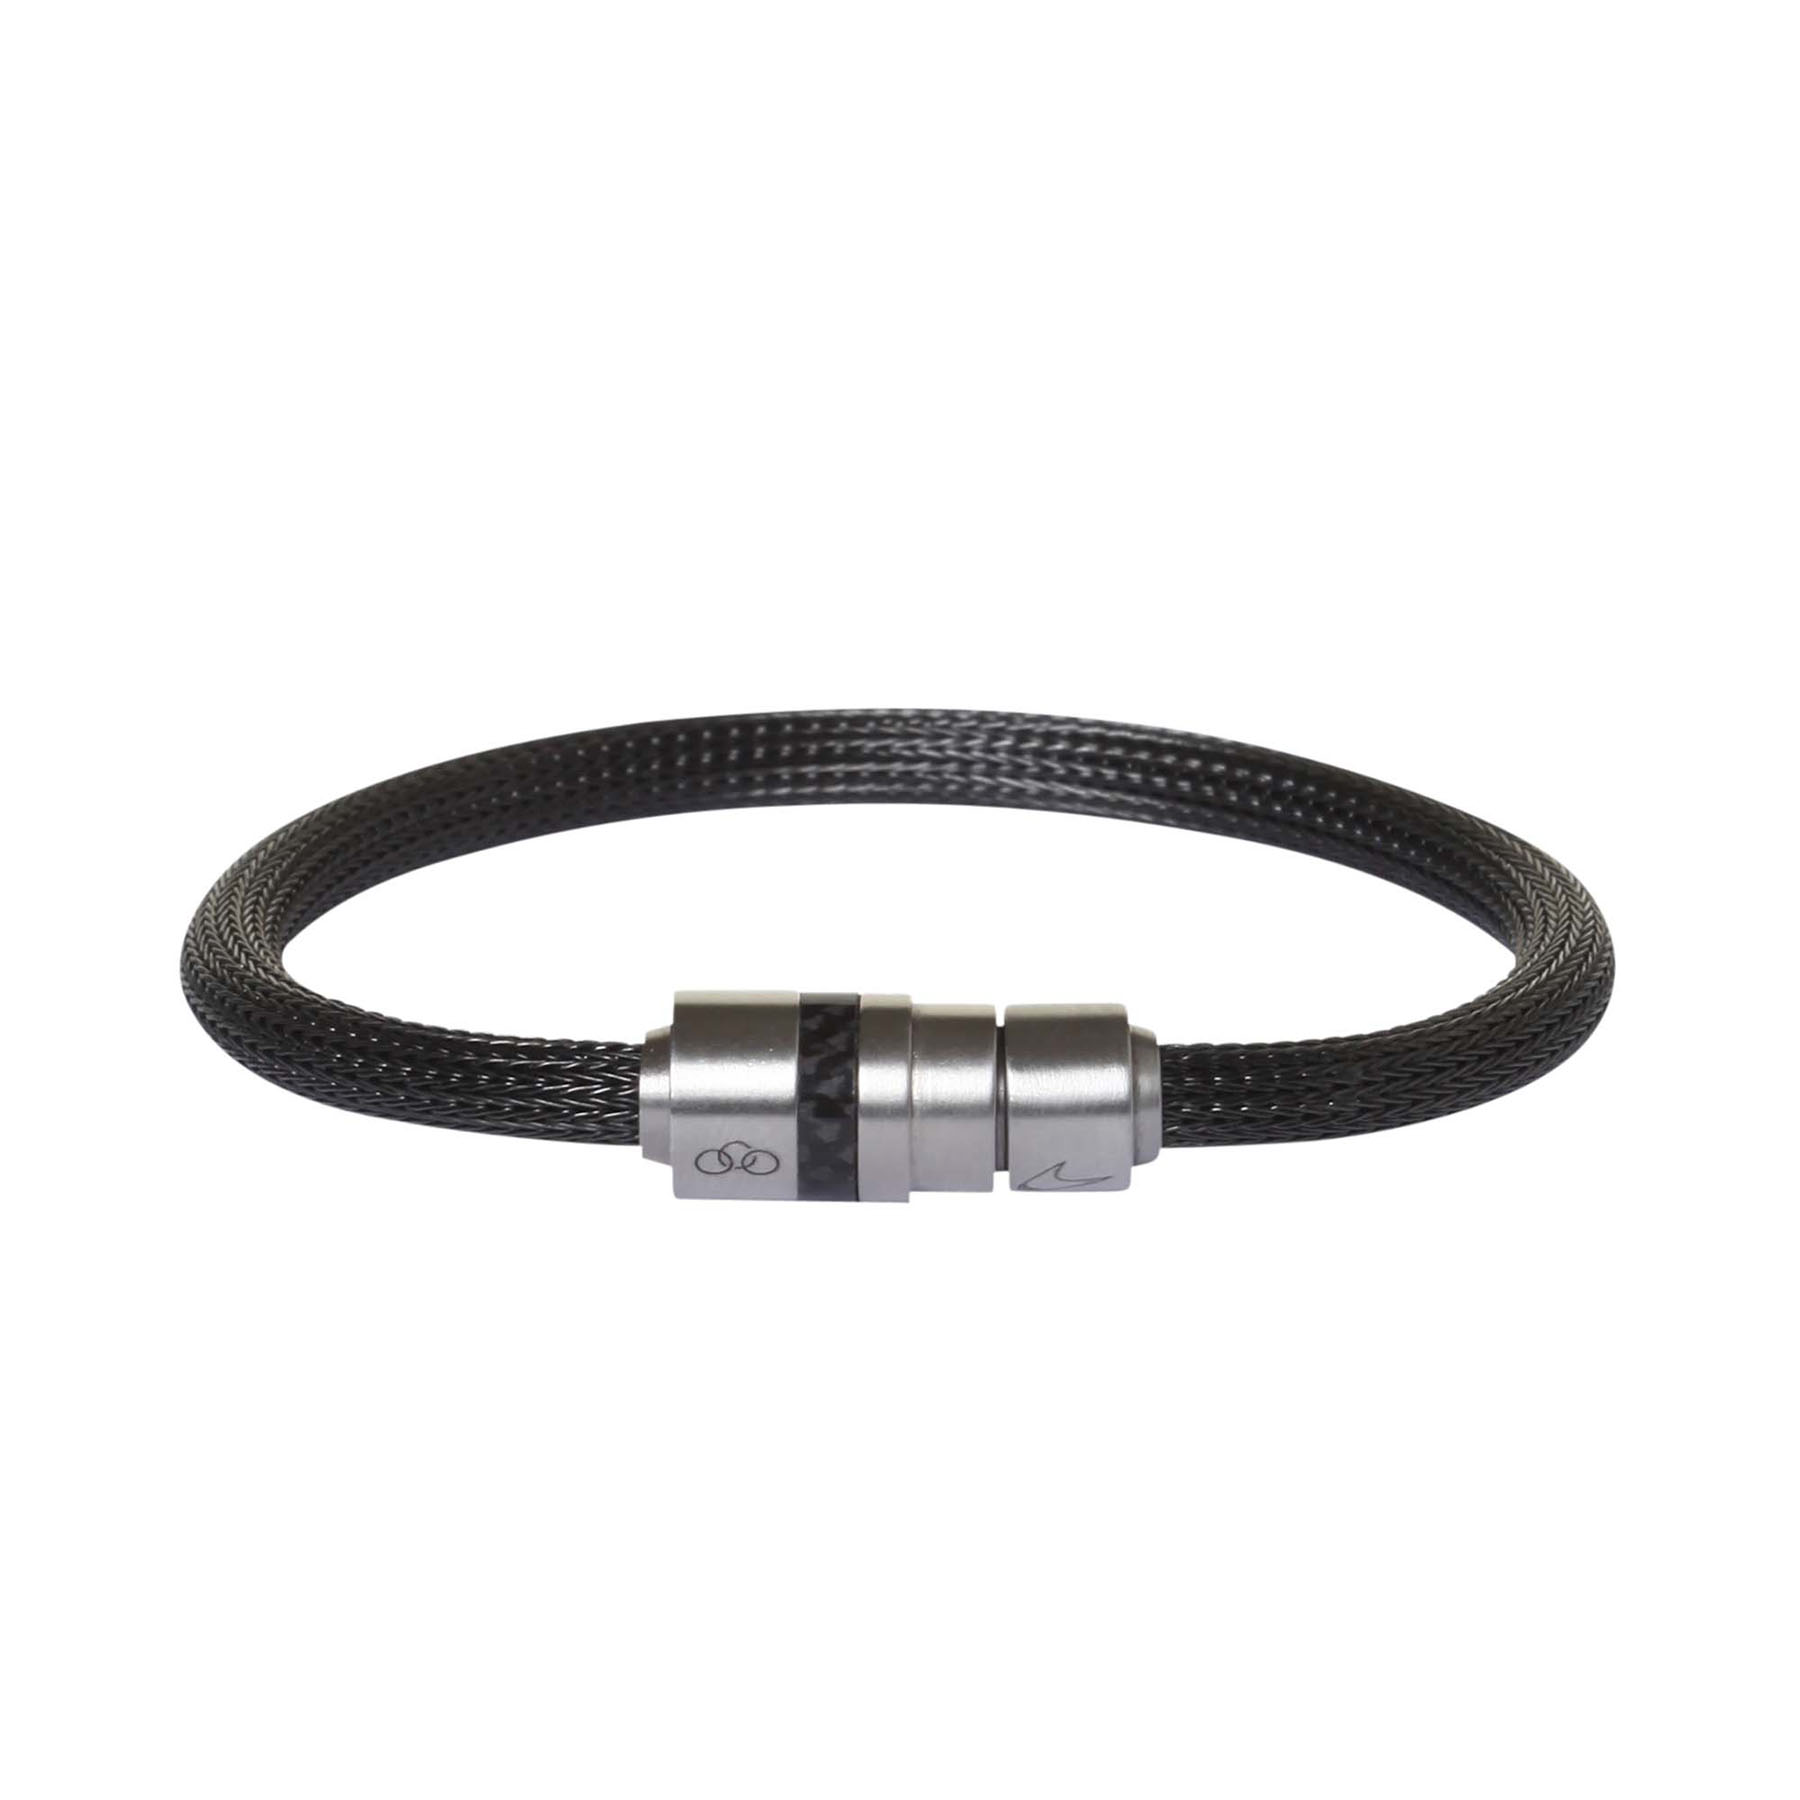 McLaren LINKS Mechanical Bracelet